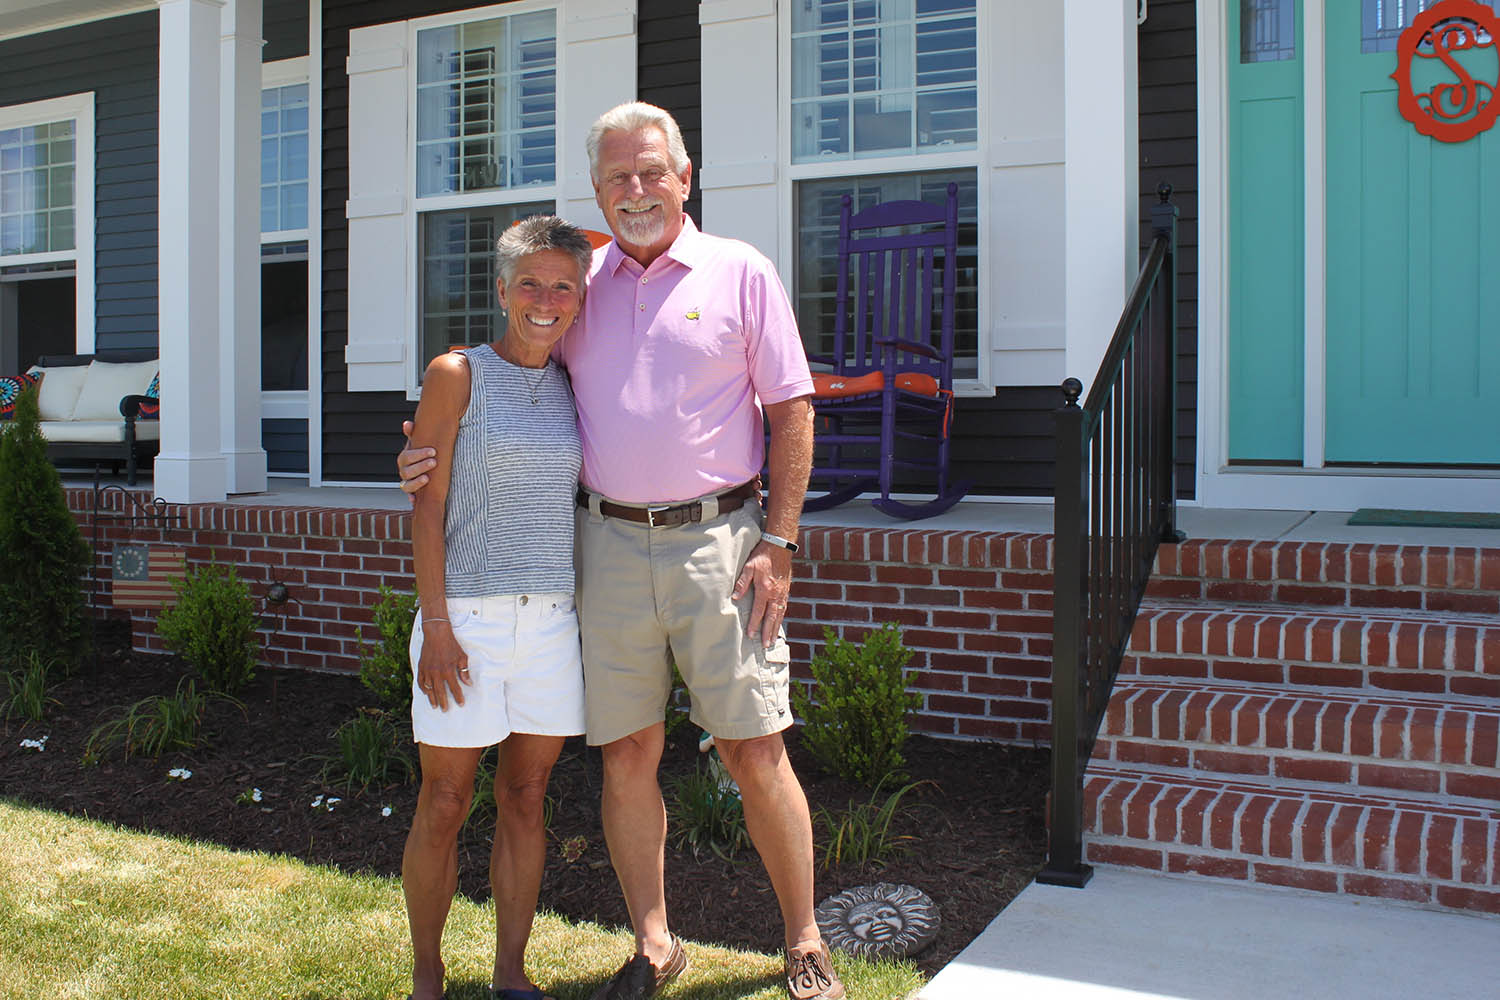 Meet Featured Boomers Barb & Greg Sullivan